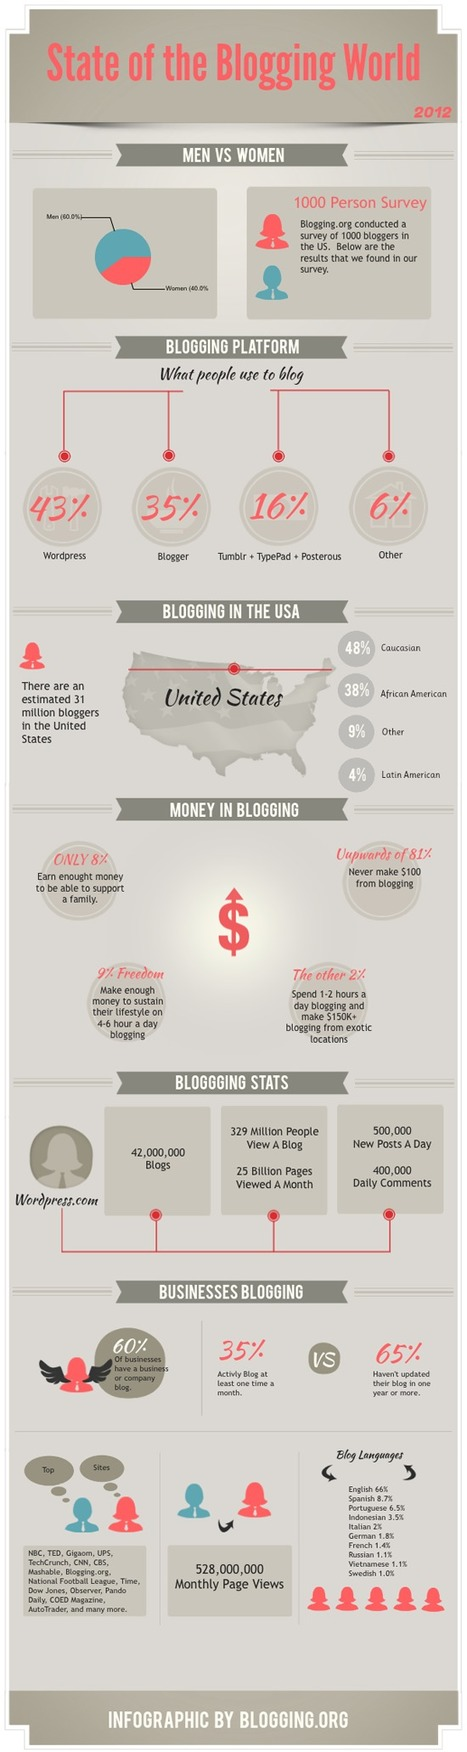 Blogging Stats 2012 | Social Media Butterflies | Scoop.it